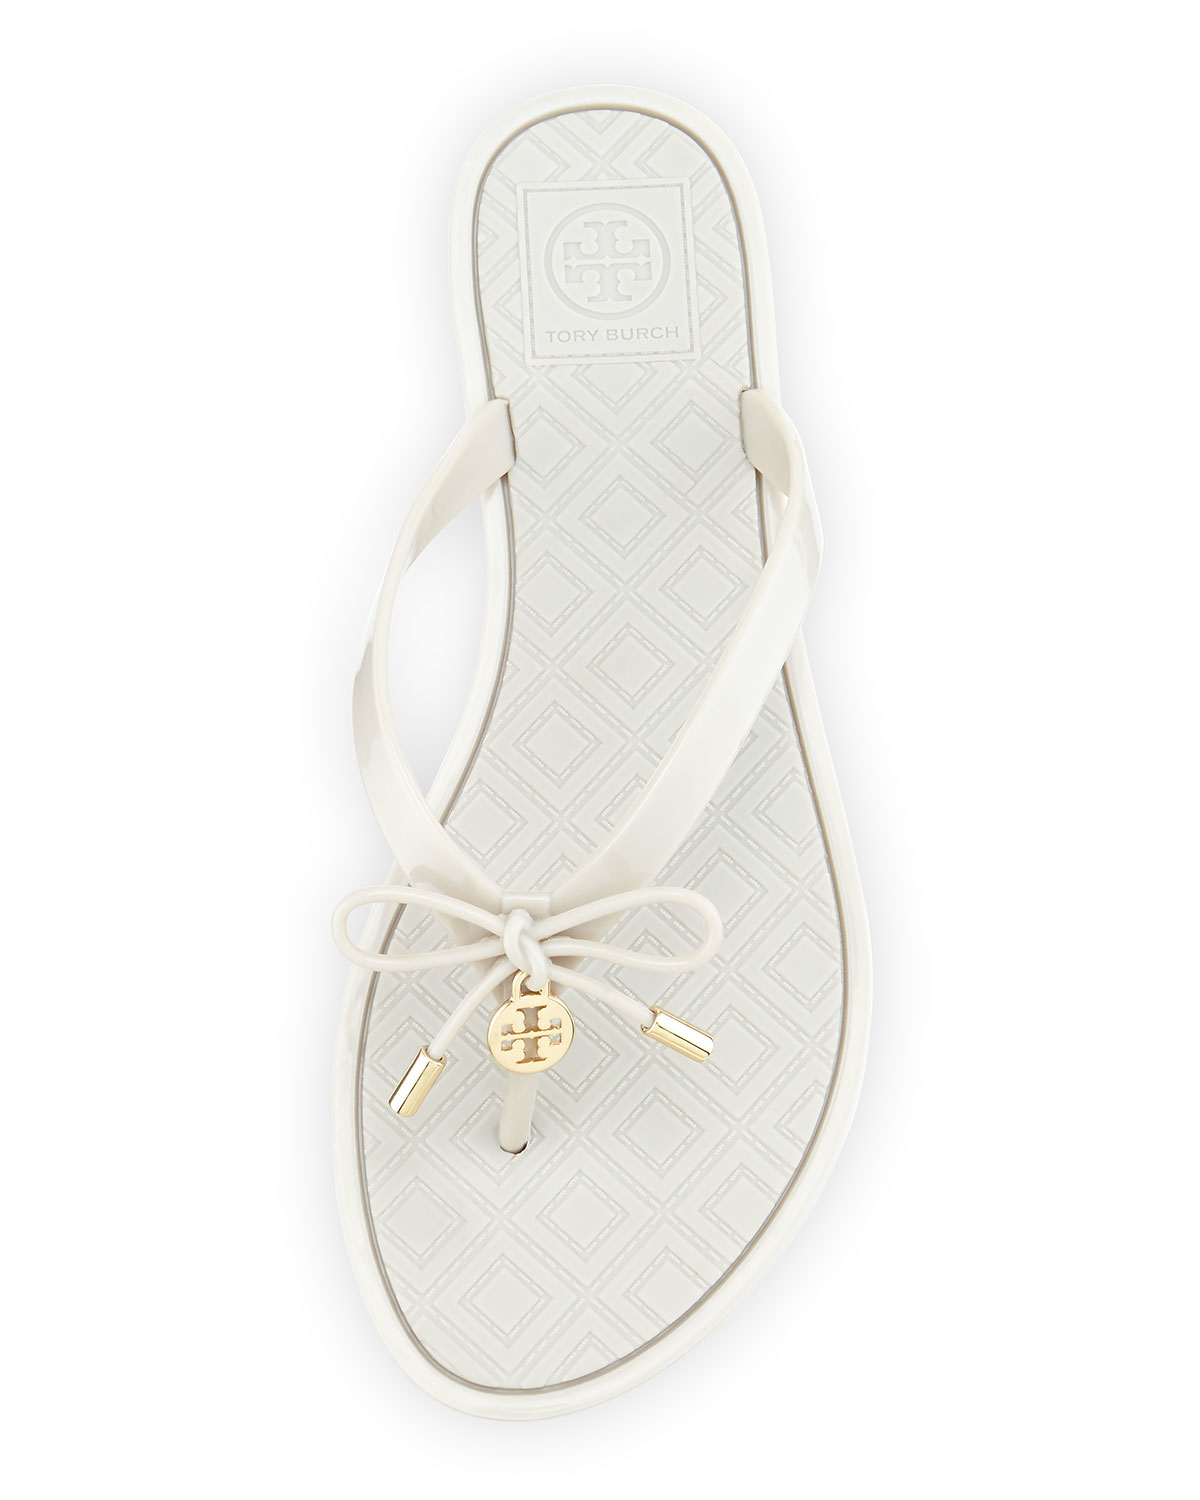 8d2348ca4e0818 Lyst - Tory Burch Jelly Bow Logo-Charm Thong Sandals in White